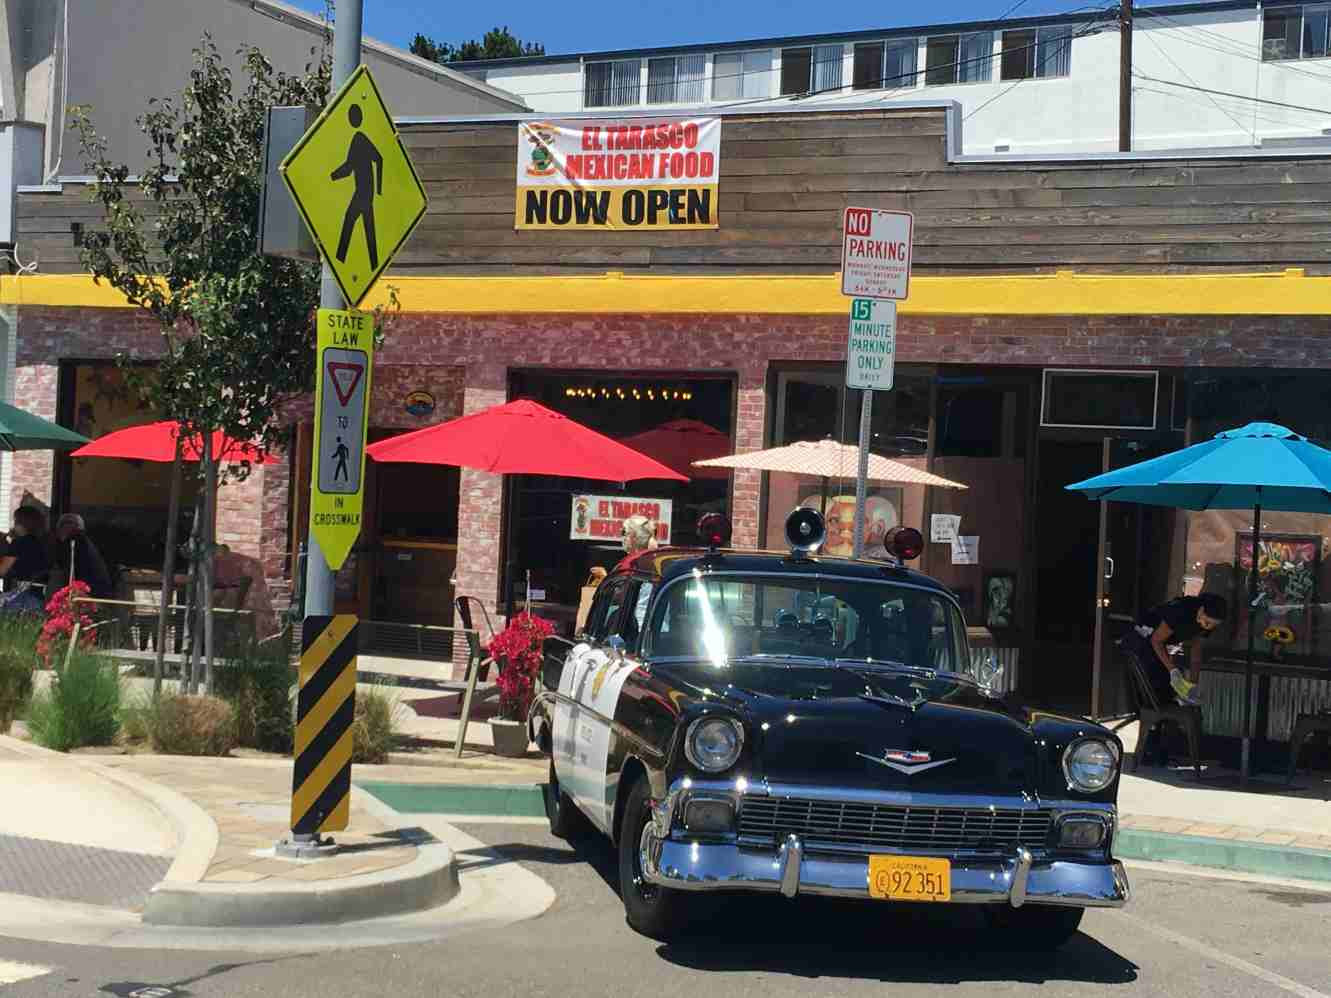 Steaks On Pch Ceviche On Pier And An Impossible Name Easy Reader News